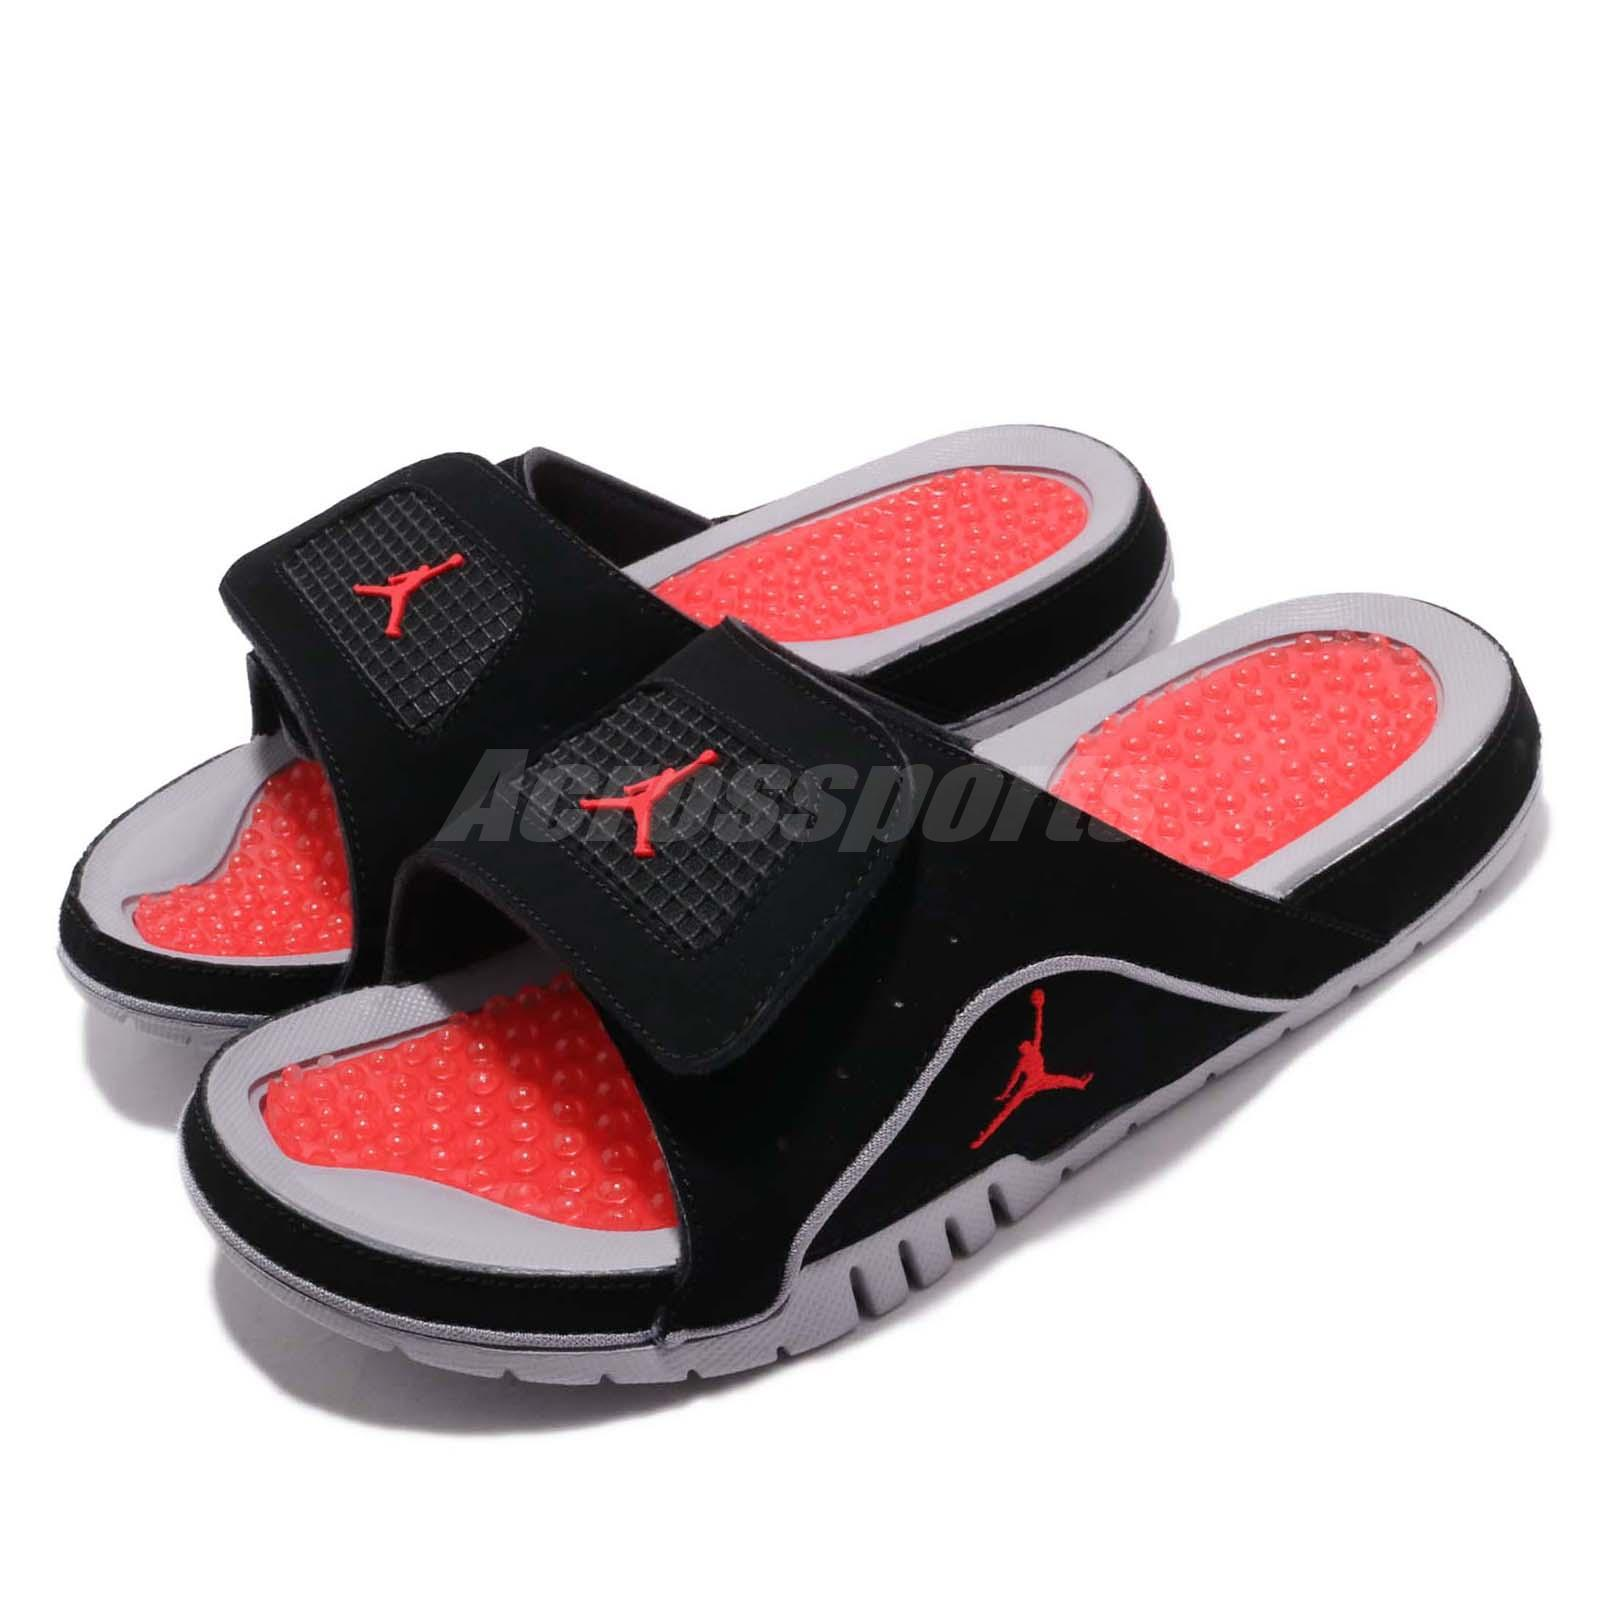 promo code 7a960 e4a59 Details about Nike Jordan Hydro IV 4 Retro Black Red Grey Men Sports Sandals  Slides 532225-006